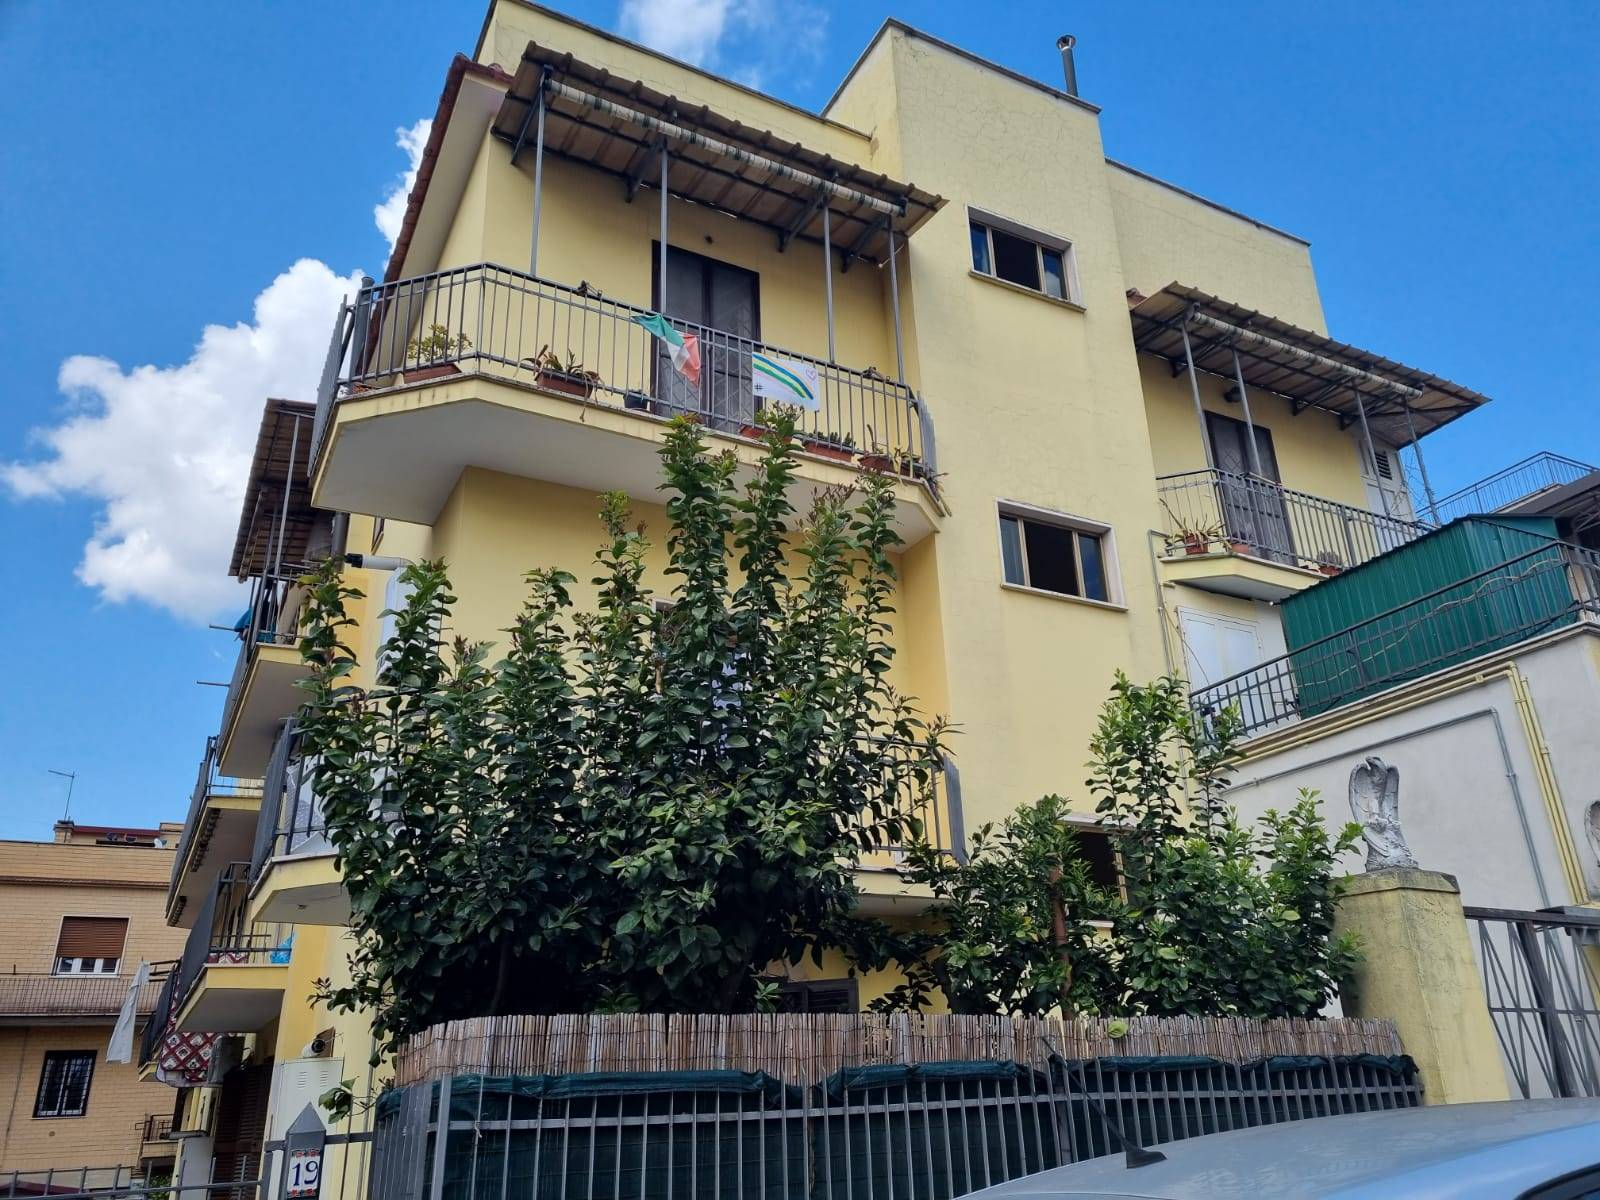 SAN CLETO, ROMA, Apartment for rent of 45 Sq. mt., Good condition, Heating Individual heating system, Energetic class: G, Epi: 175 kwh/m2 year,